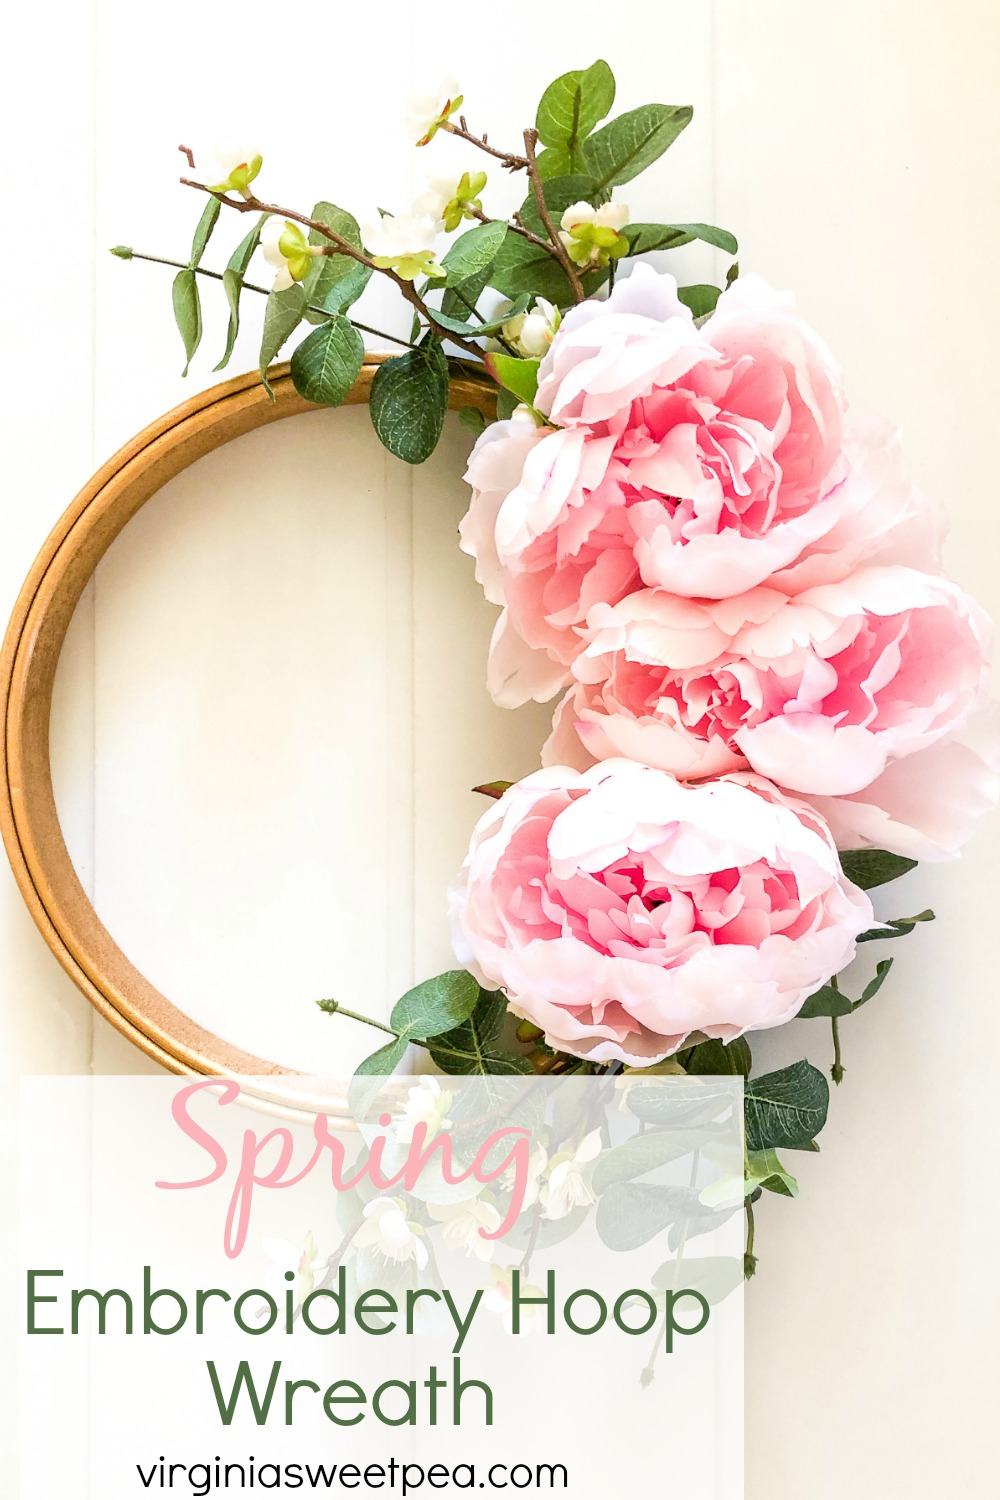 DIY Spring Embroidery Hoop Wreath - Learn how to make this wreath for your home. #springwreath #embroideryhoopcraft #embroideryhoop #springcraft via @spaula